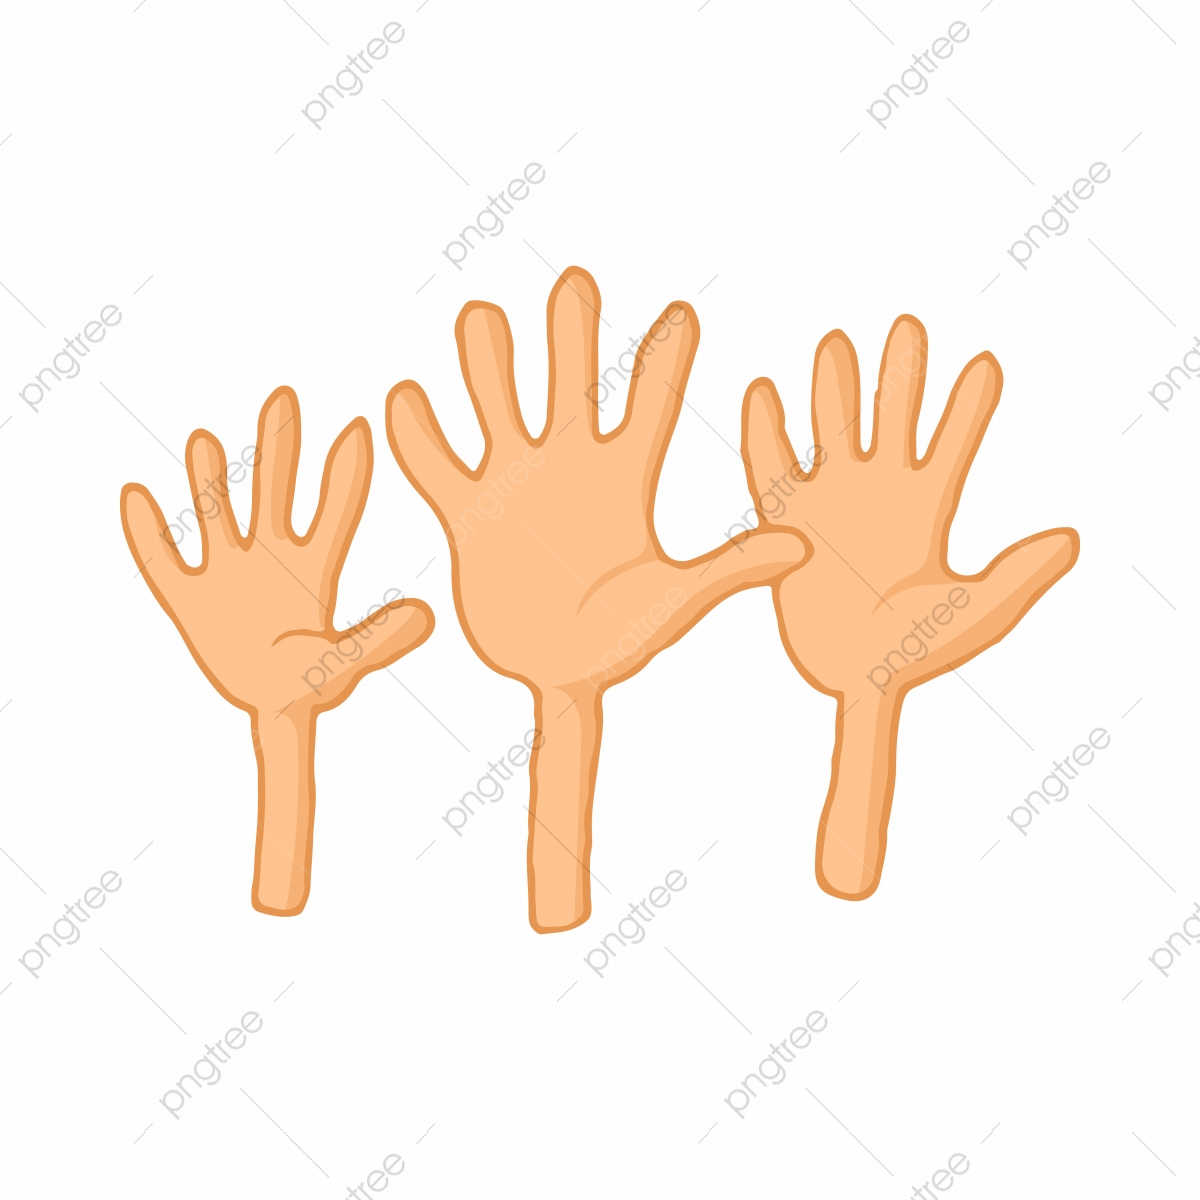 Raise Hands Png Images Vector And Psd Files Free Download On Pngtree Please use and share these clipart pictures with your friends. https pngtree com freepng open empty raising hands to ask for something icon 5084604 html